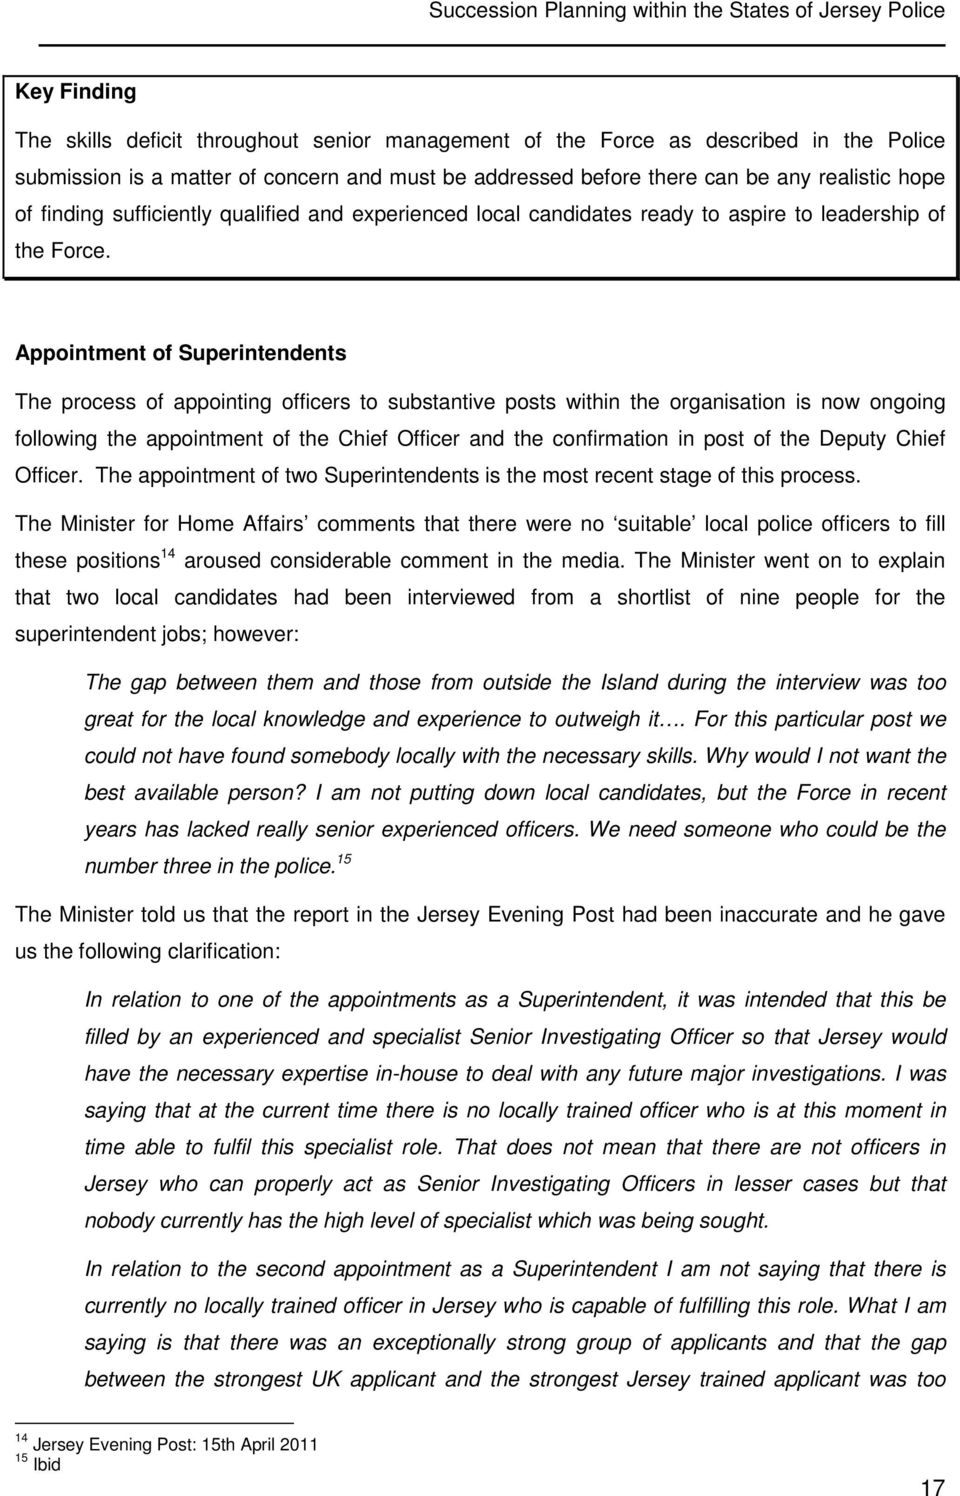 Appointment of Superintendents The process of appointing officers to substantive posts within the organisation is now ongoing following the appointment of the Chief Officer and the confirmation in